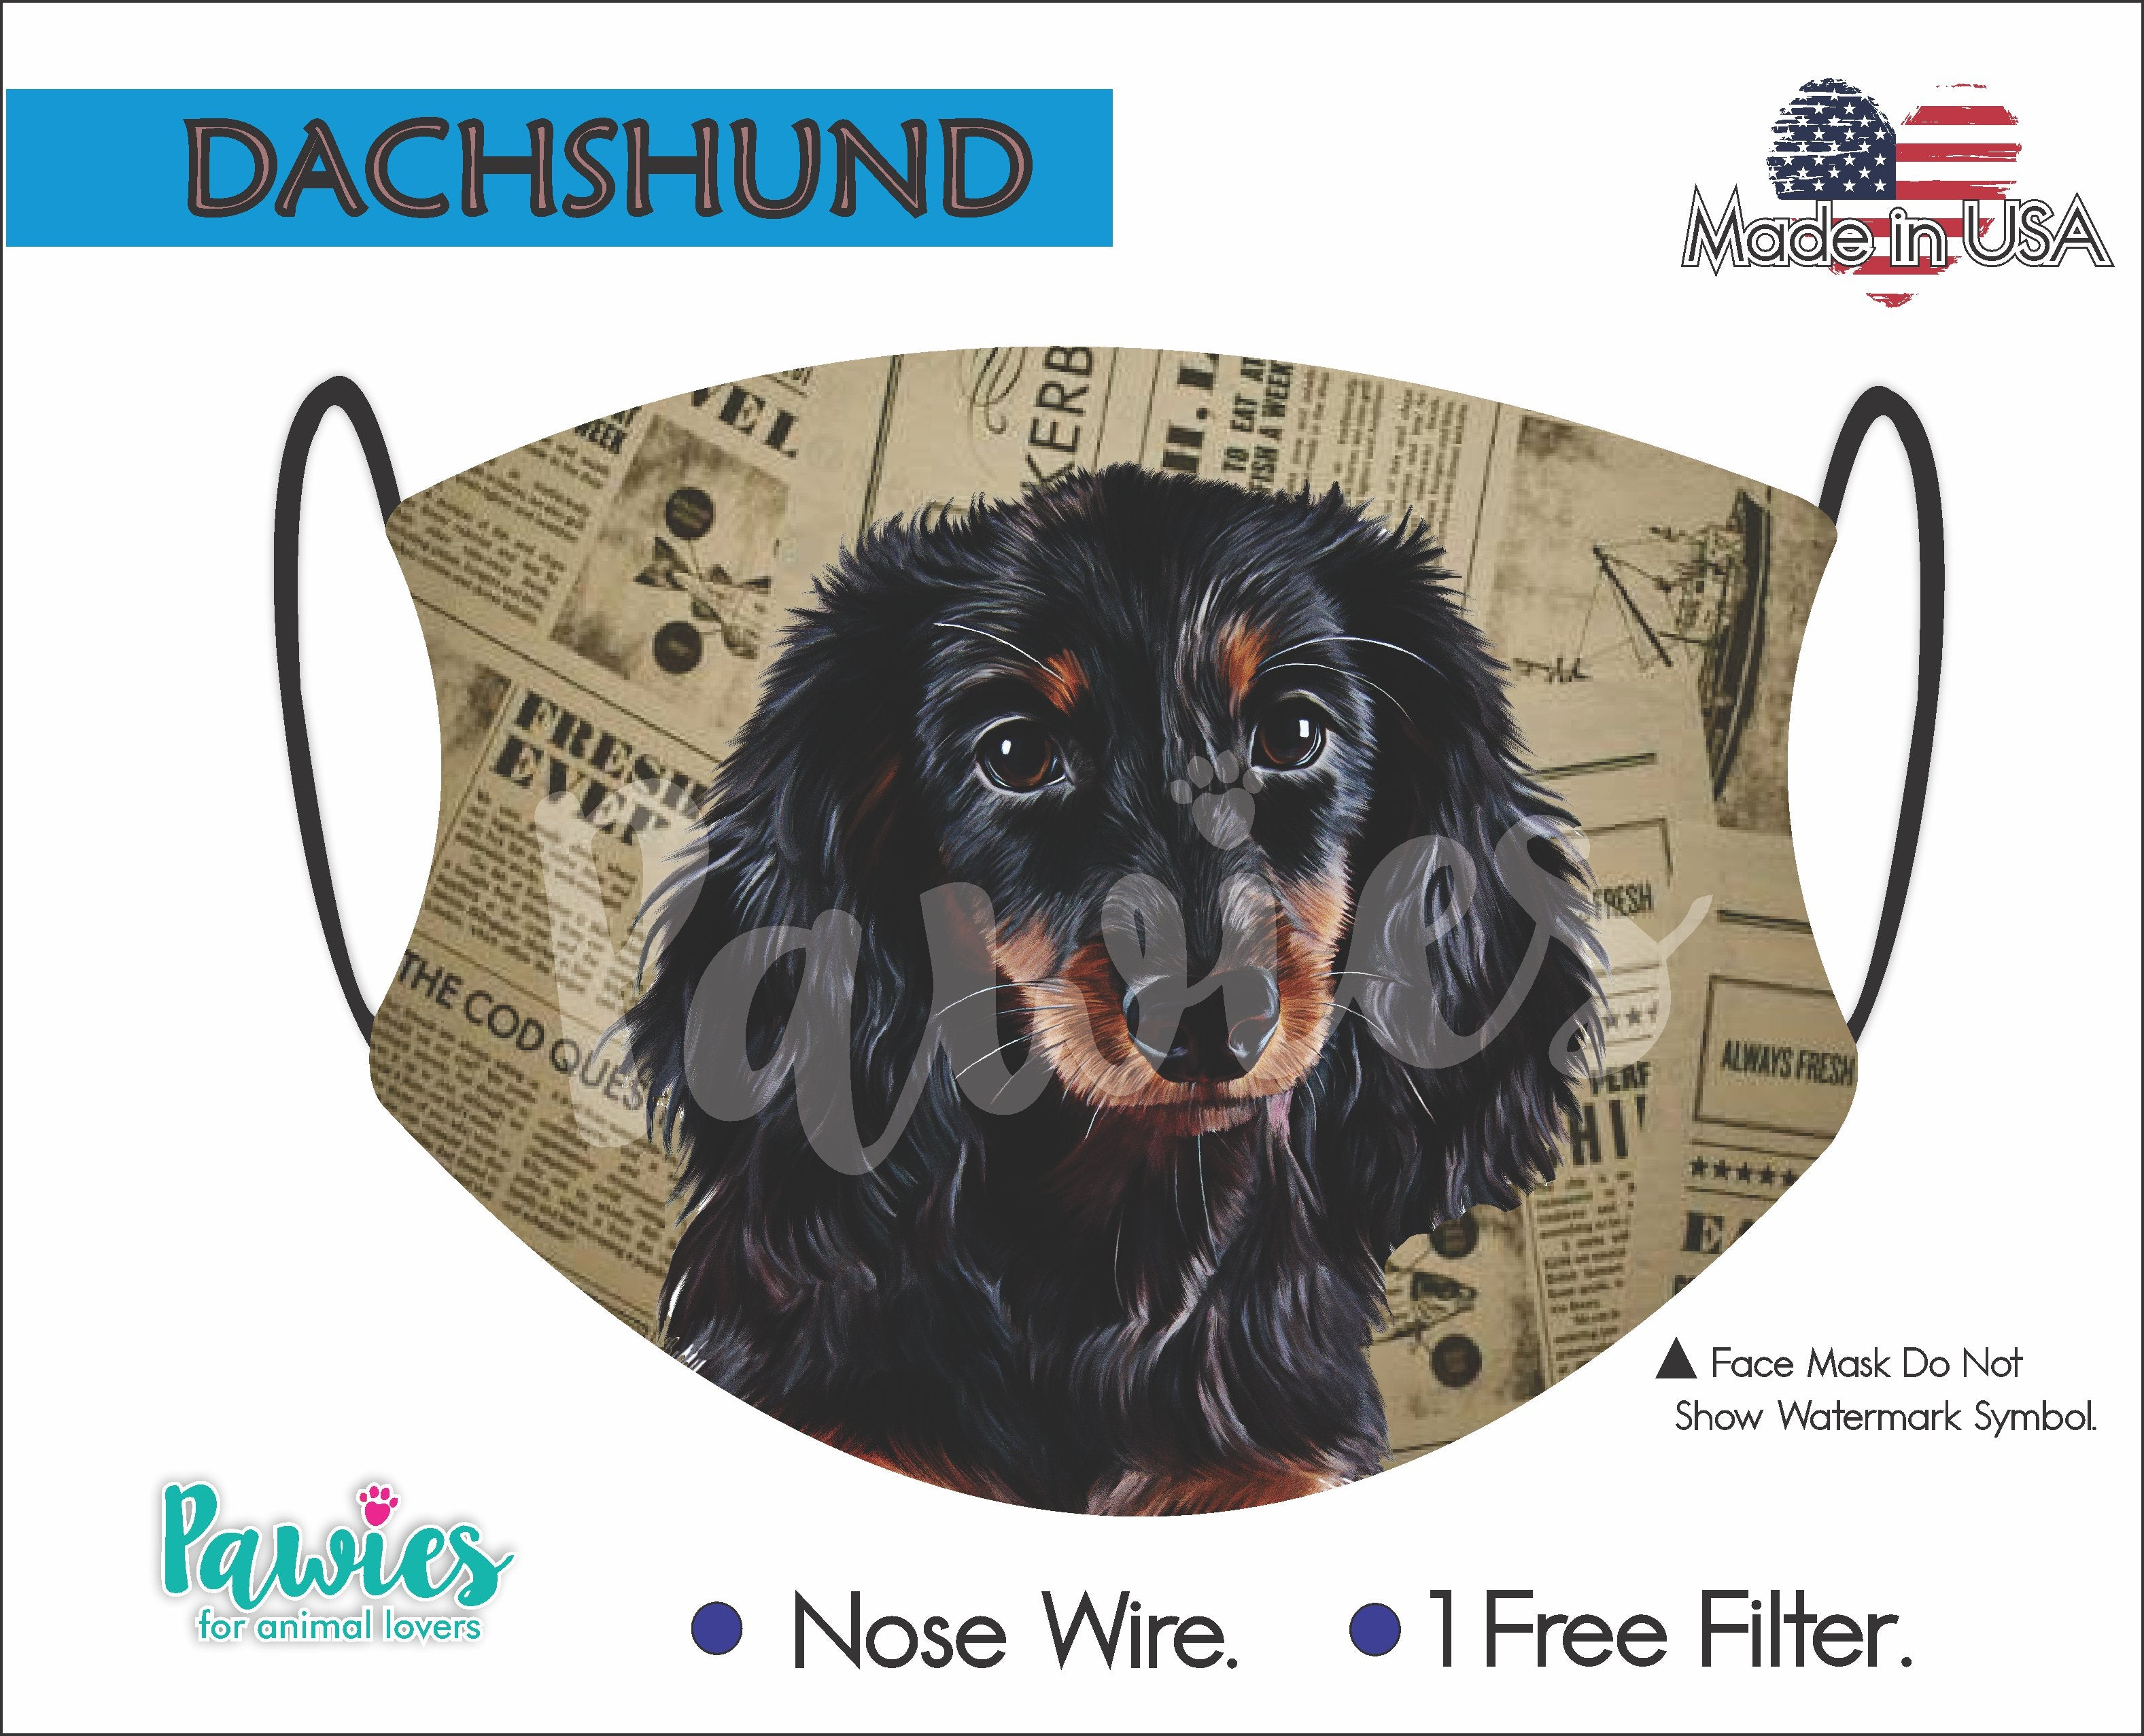 Dachshund Longhaired Face Mask